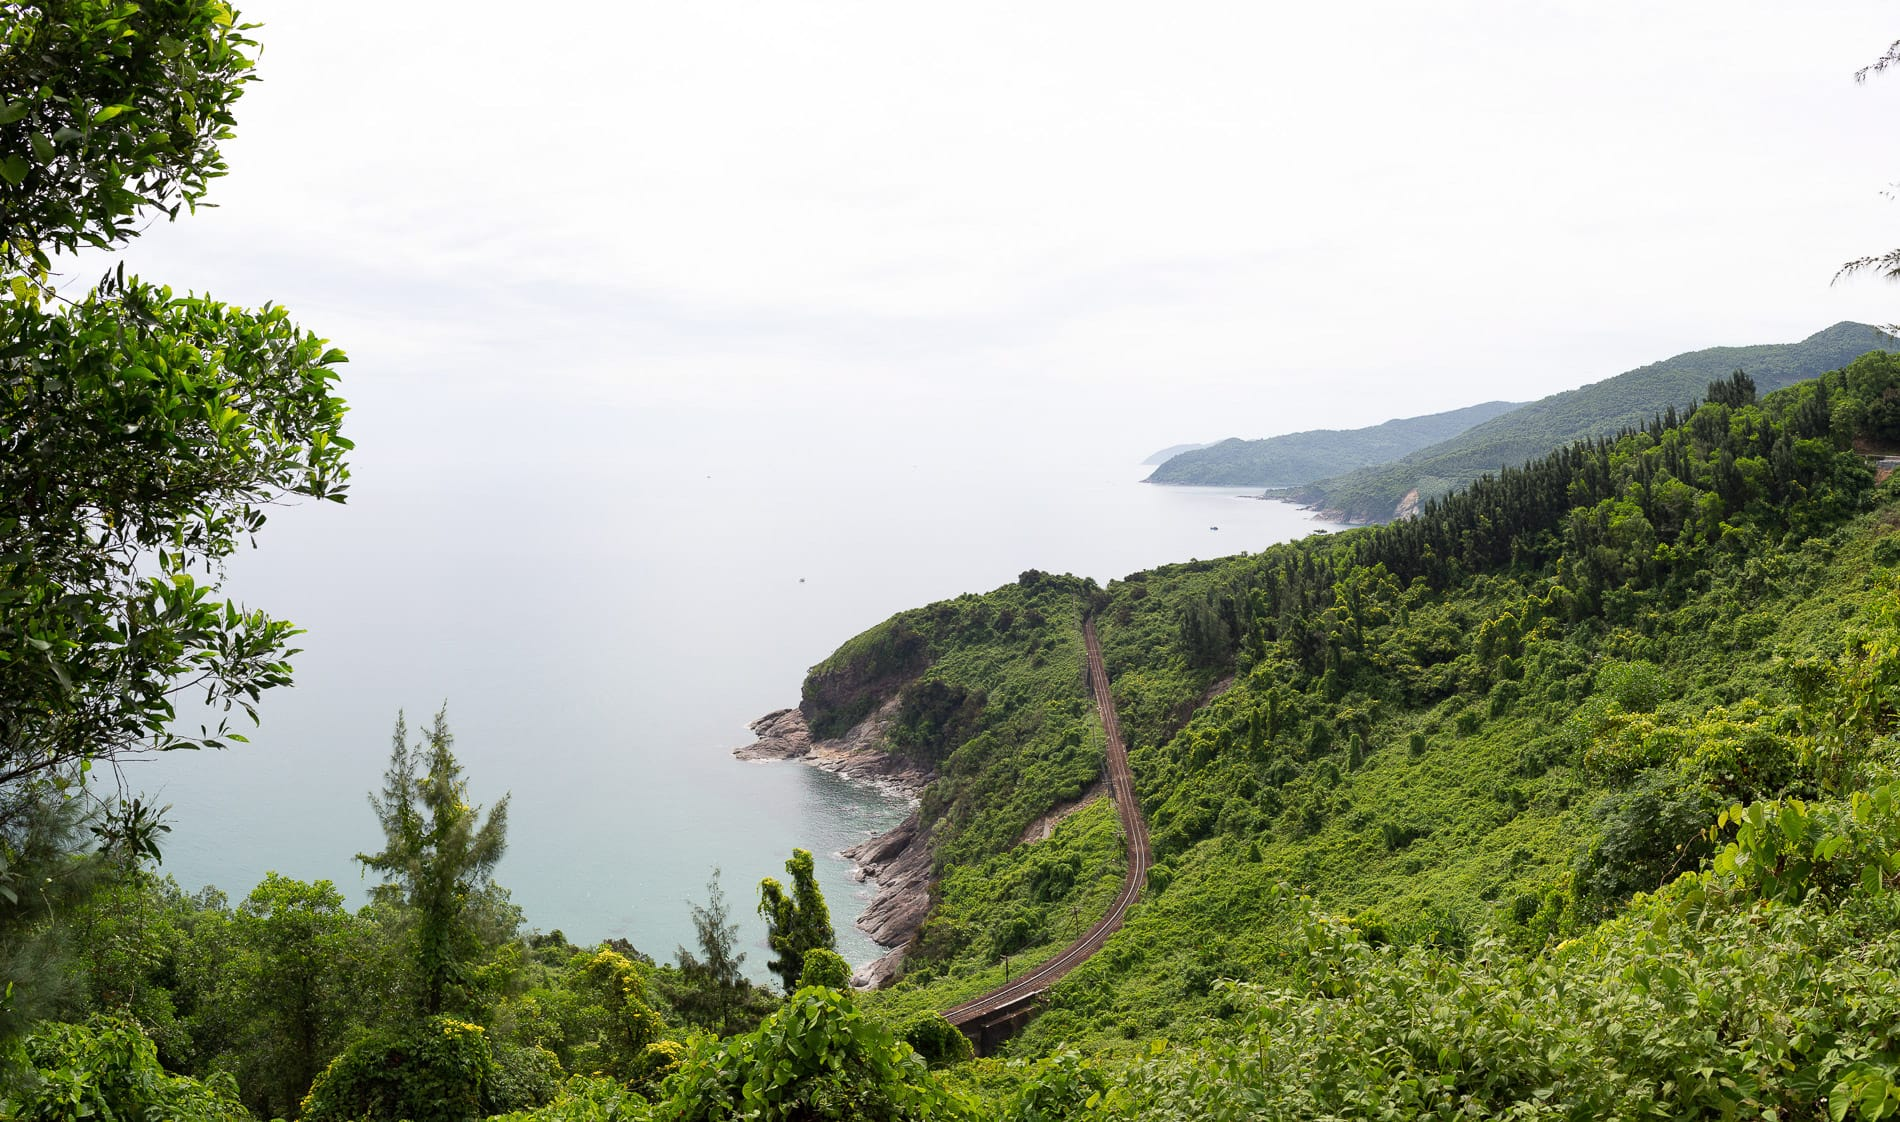 The north-south train lines at Central Vietnam's coastline